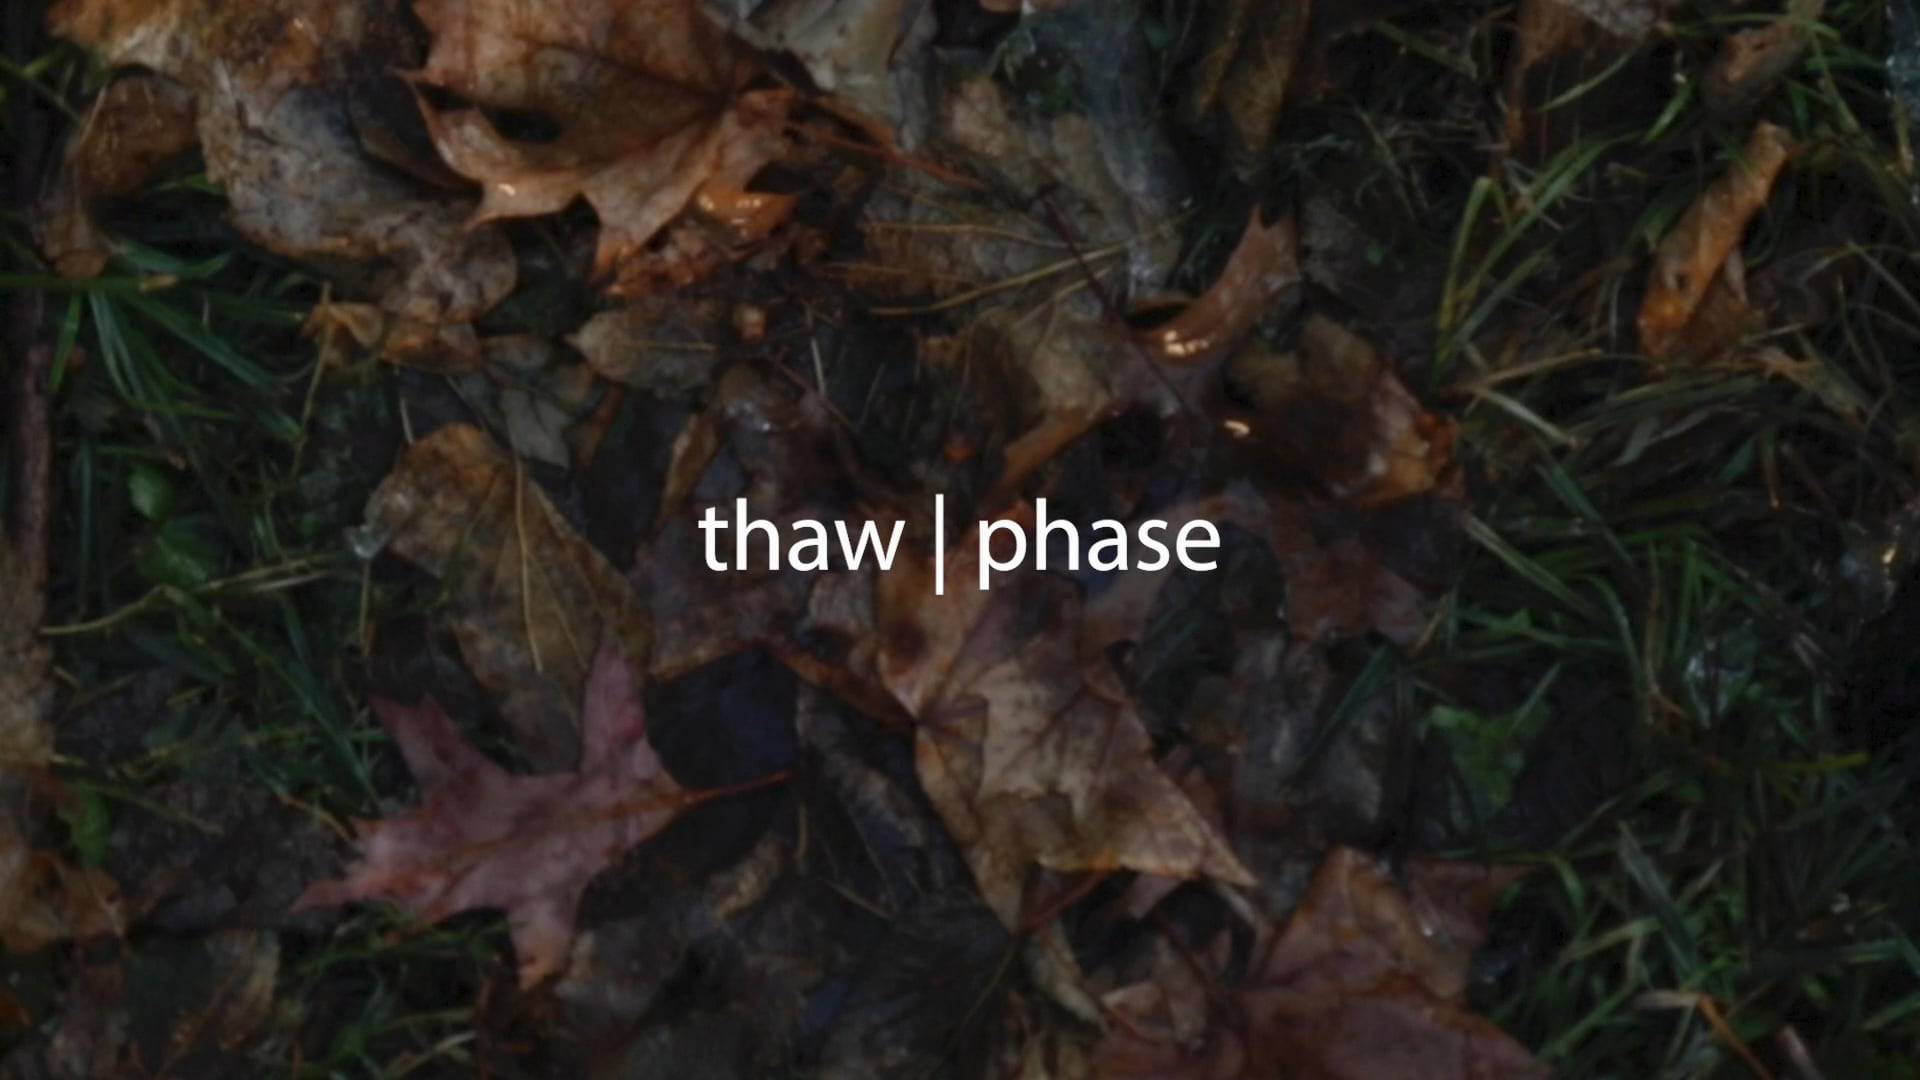 thaw | phase